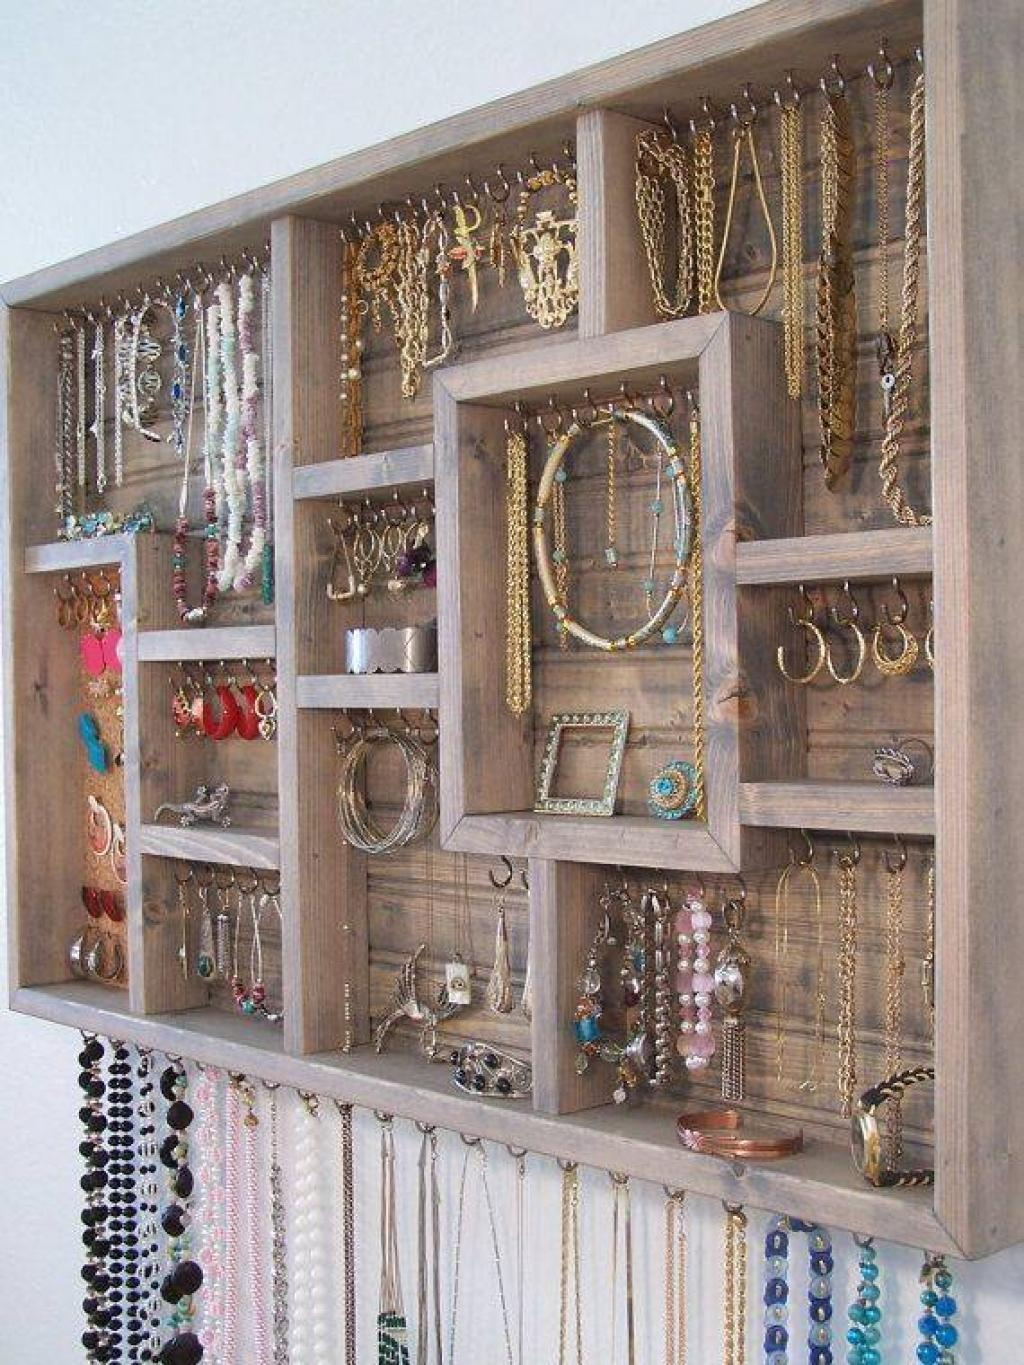 6. Organize Artistically